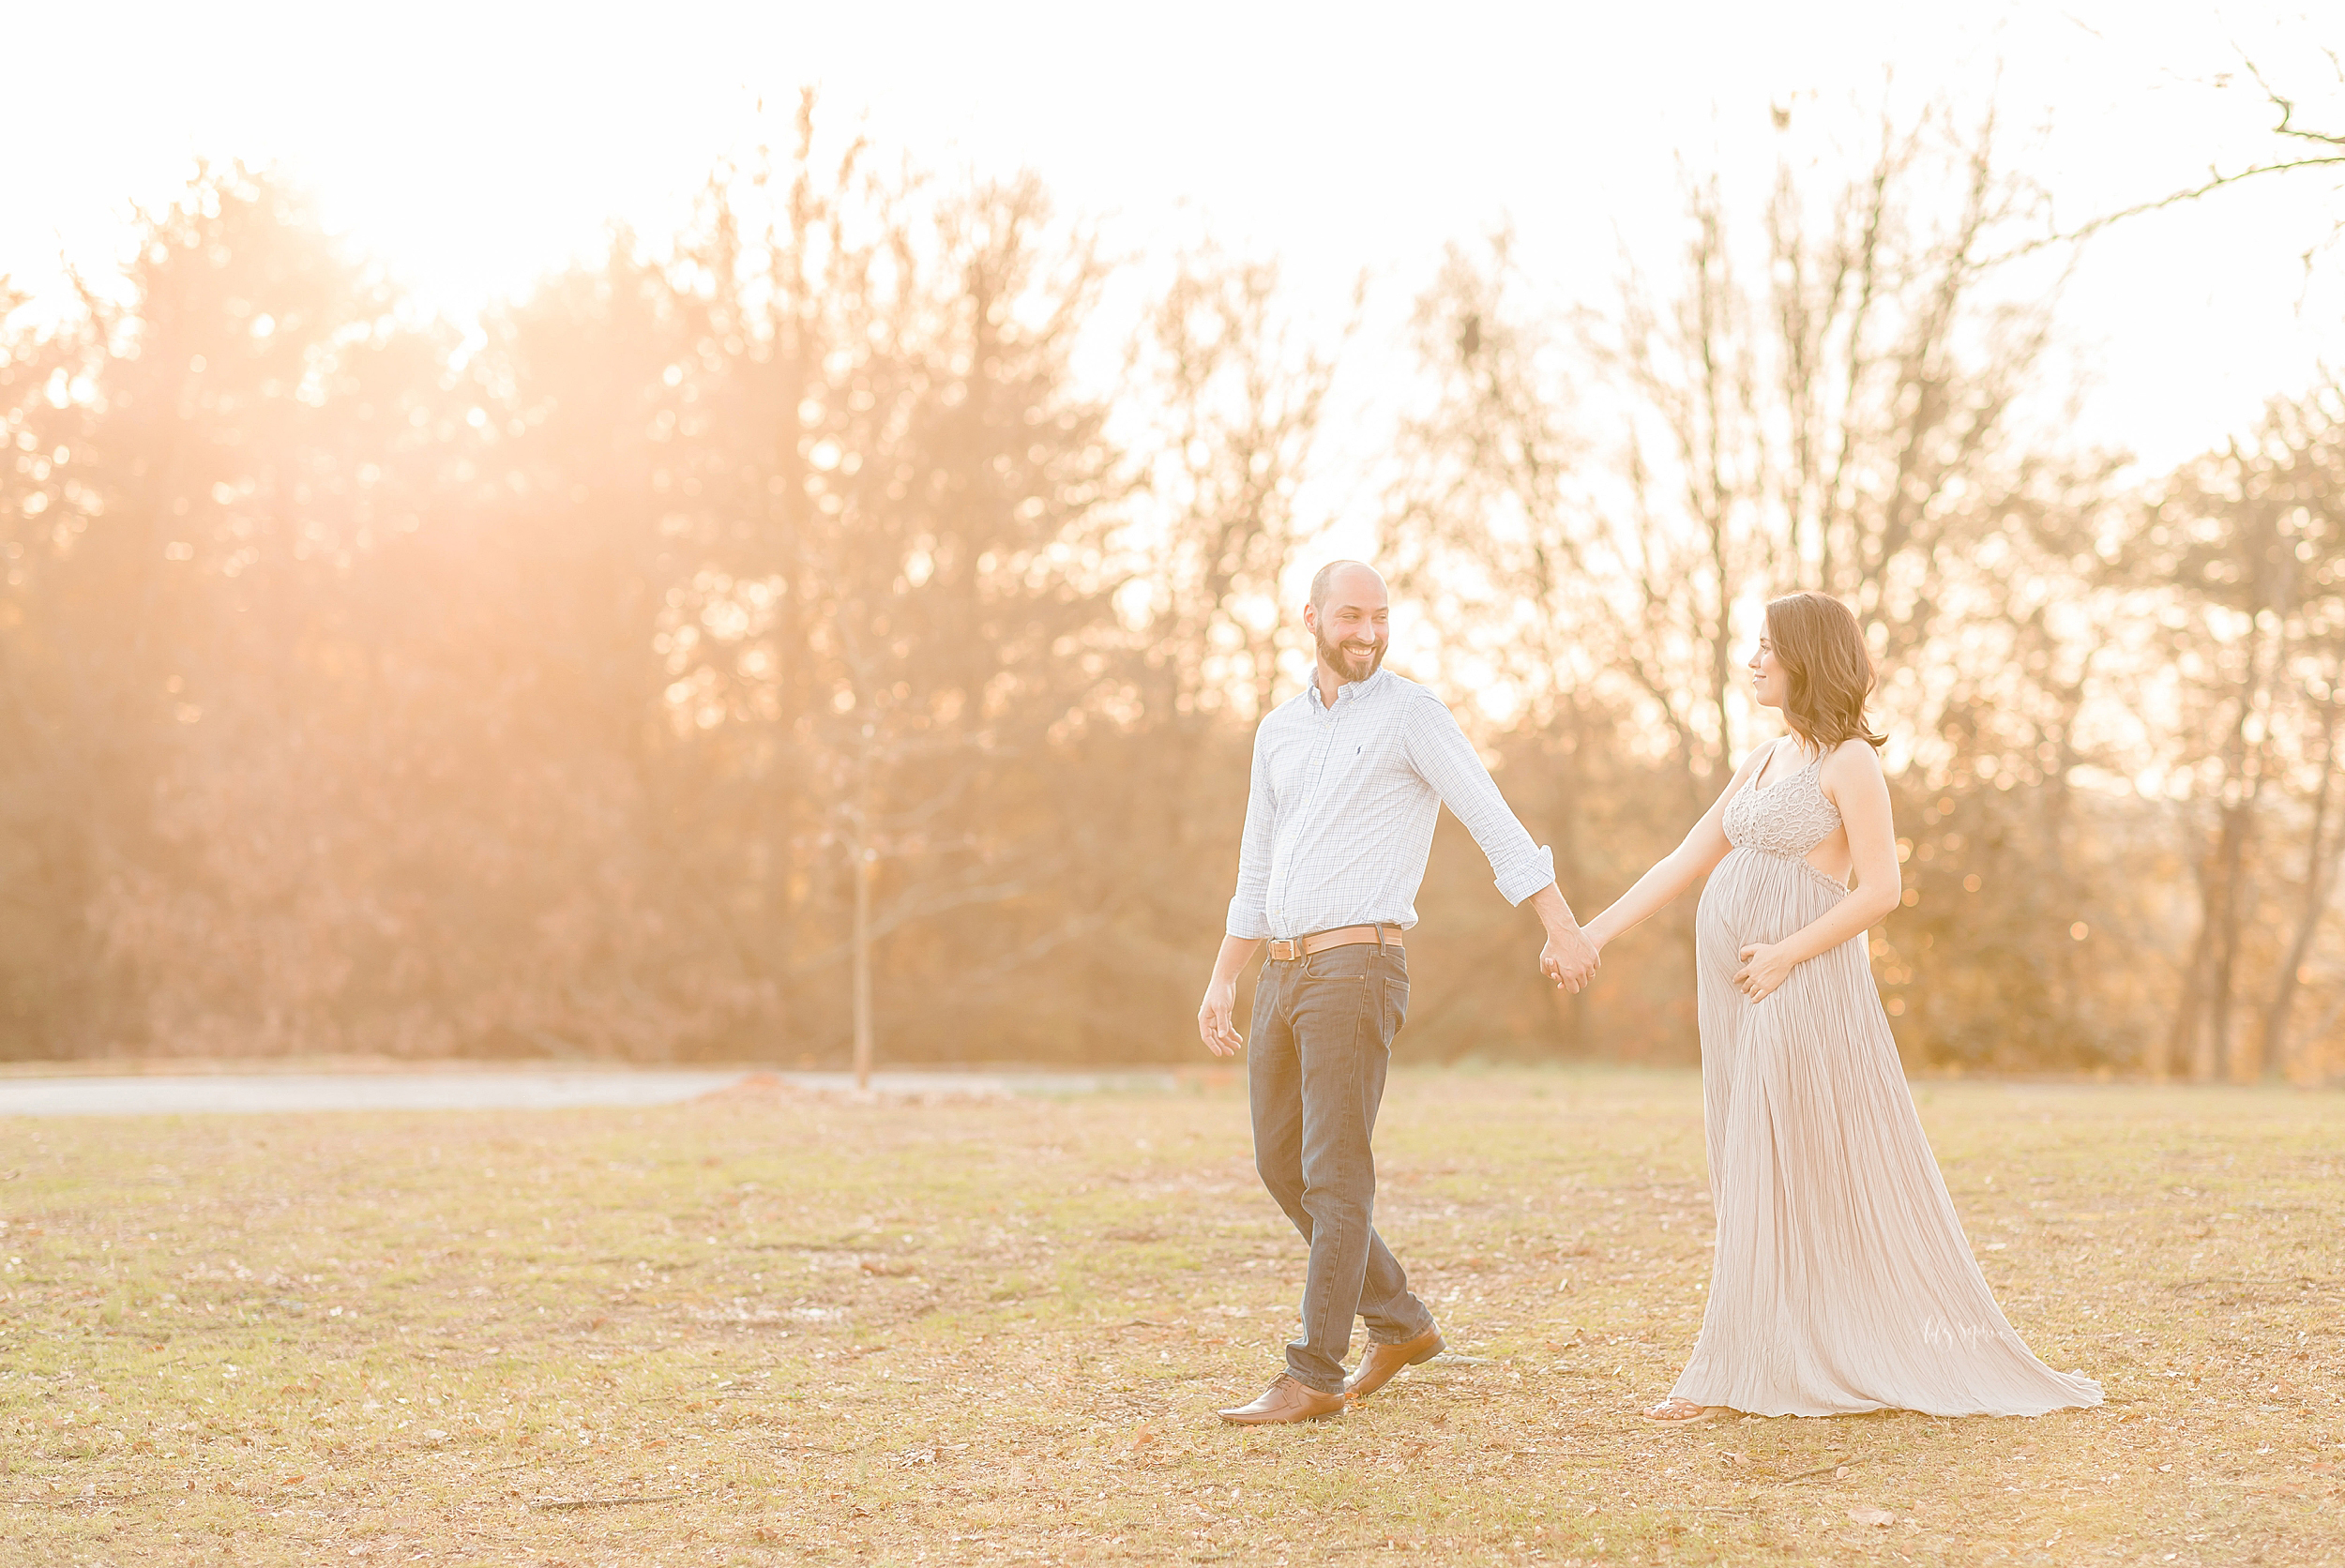 atlanta-sandy-springs-buckhead-virginia-highlands-smyrna-decatur-lily-sophia-photography-expecting-baby-girl-couples-maternity-session-sunset-park_0907.jpg